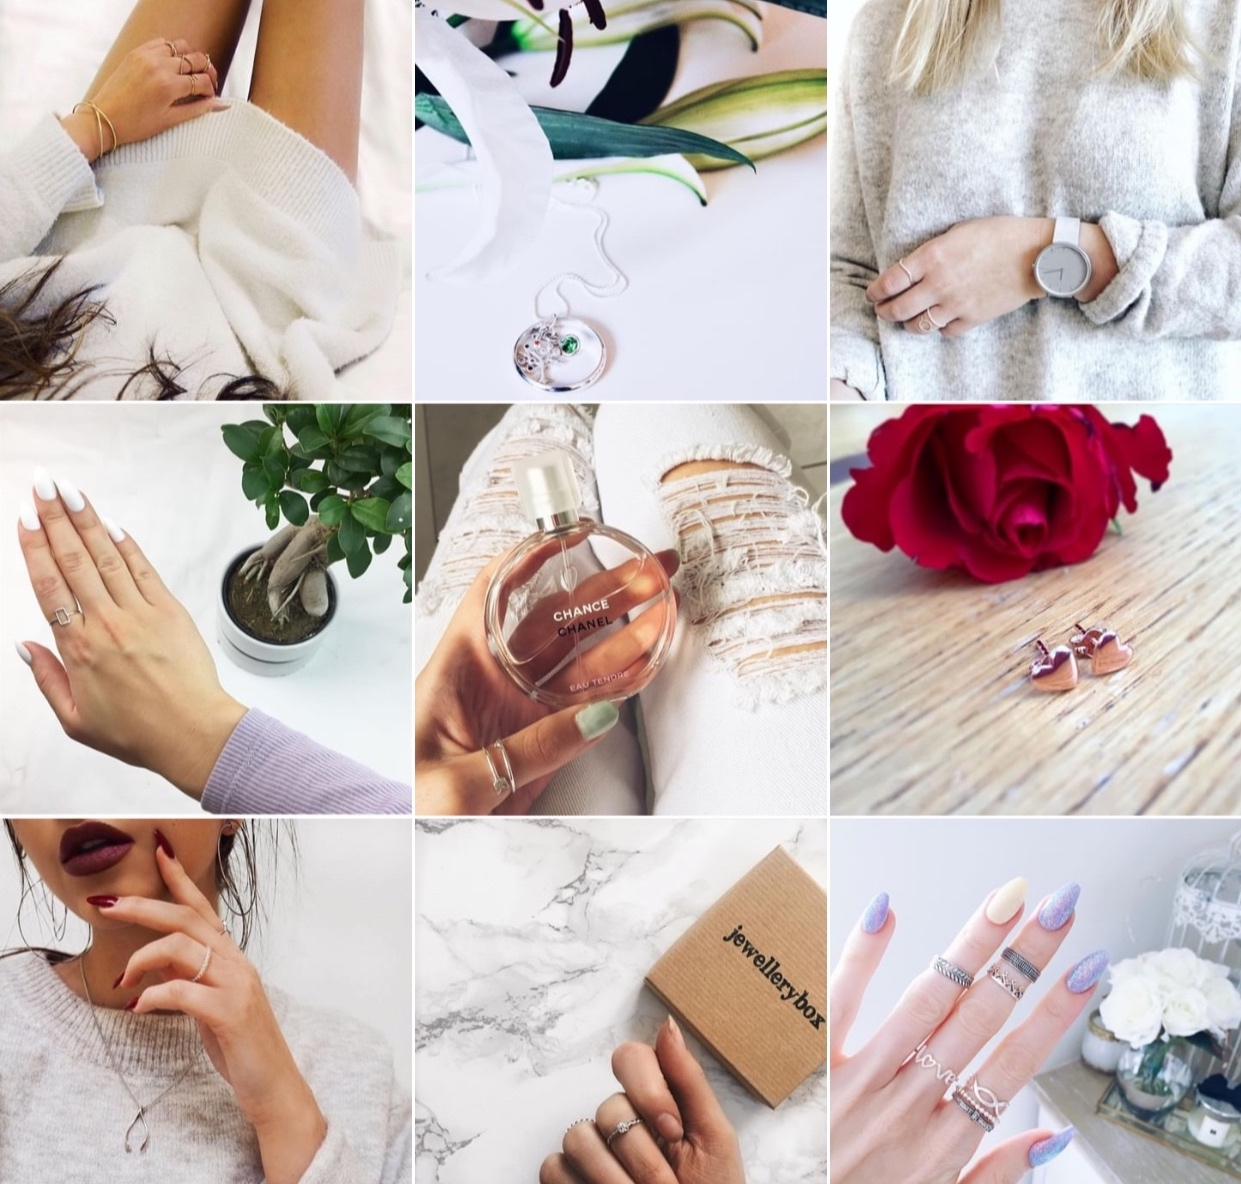 JewelleryBox.co.uk & Selected Influencers - - Influencer Marketing, Content Creation, Product Seeding & Social Media Management -